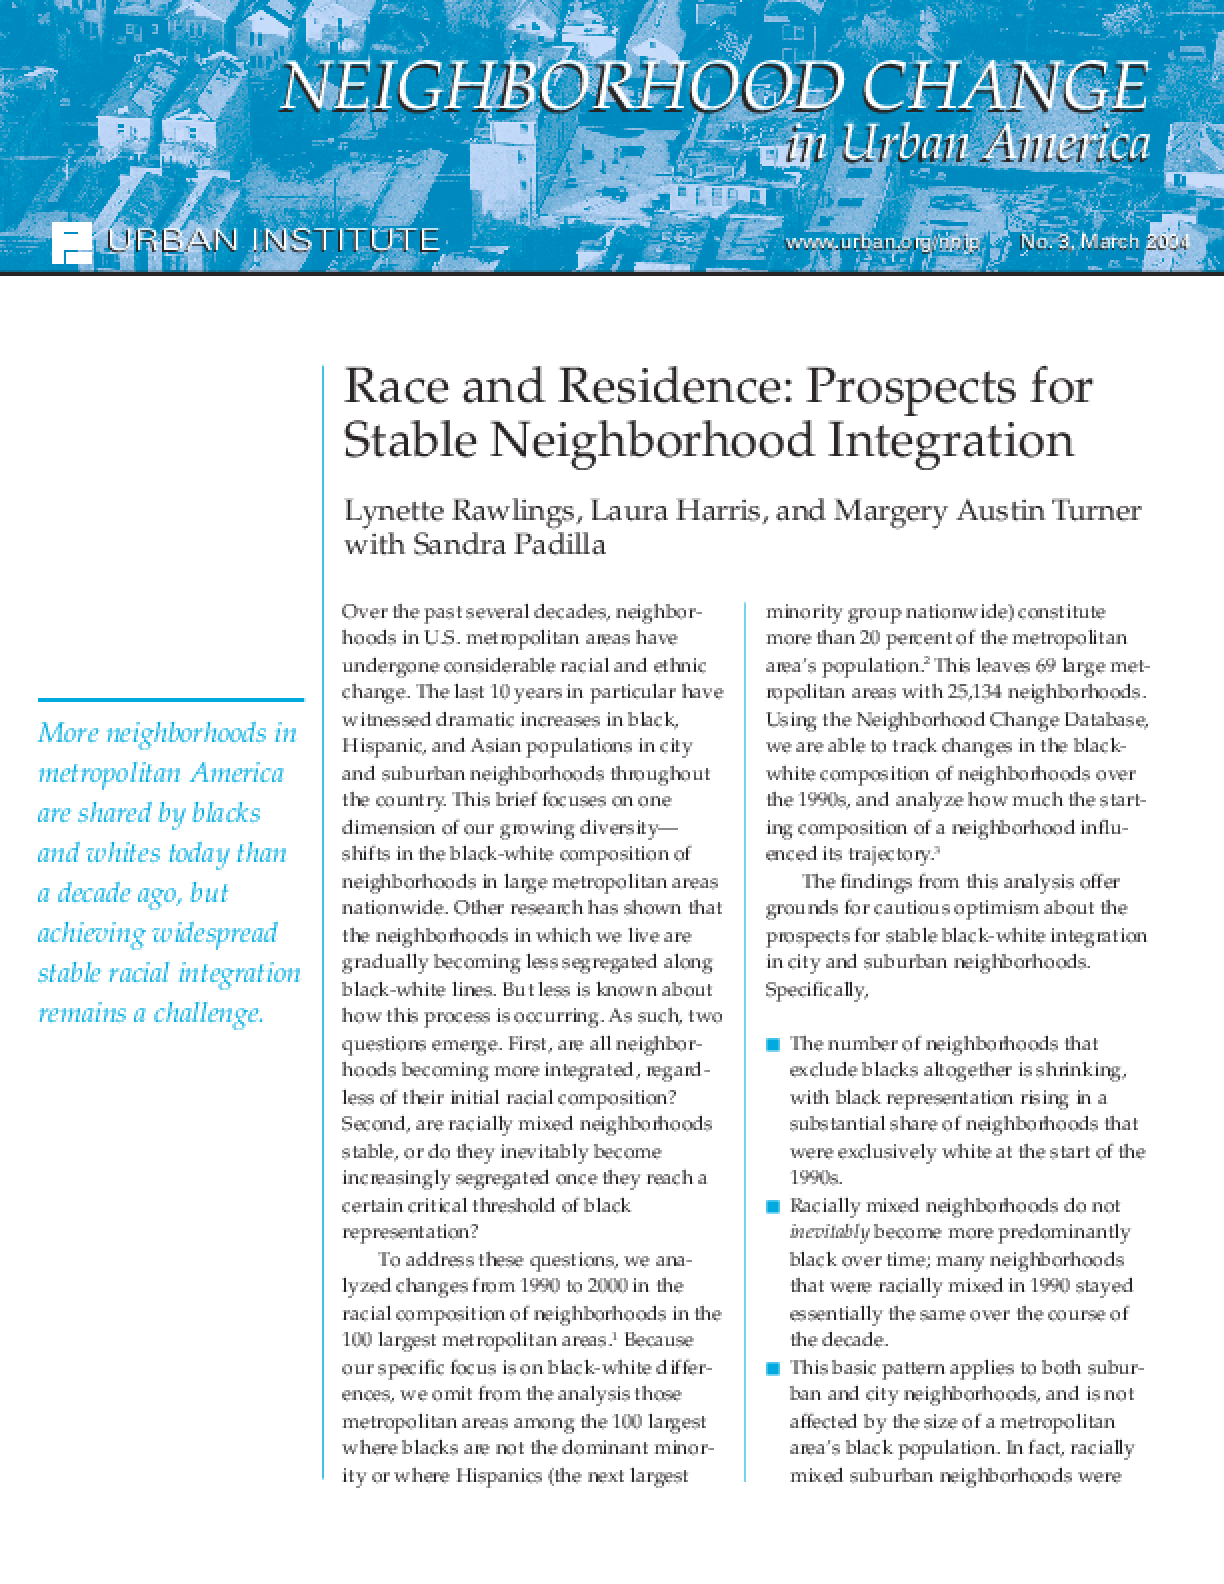 Race and Residence: Prospects for Stable Neighborhood Integration